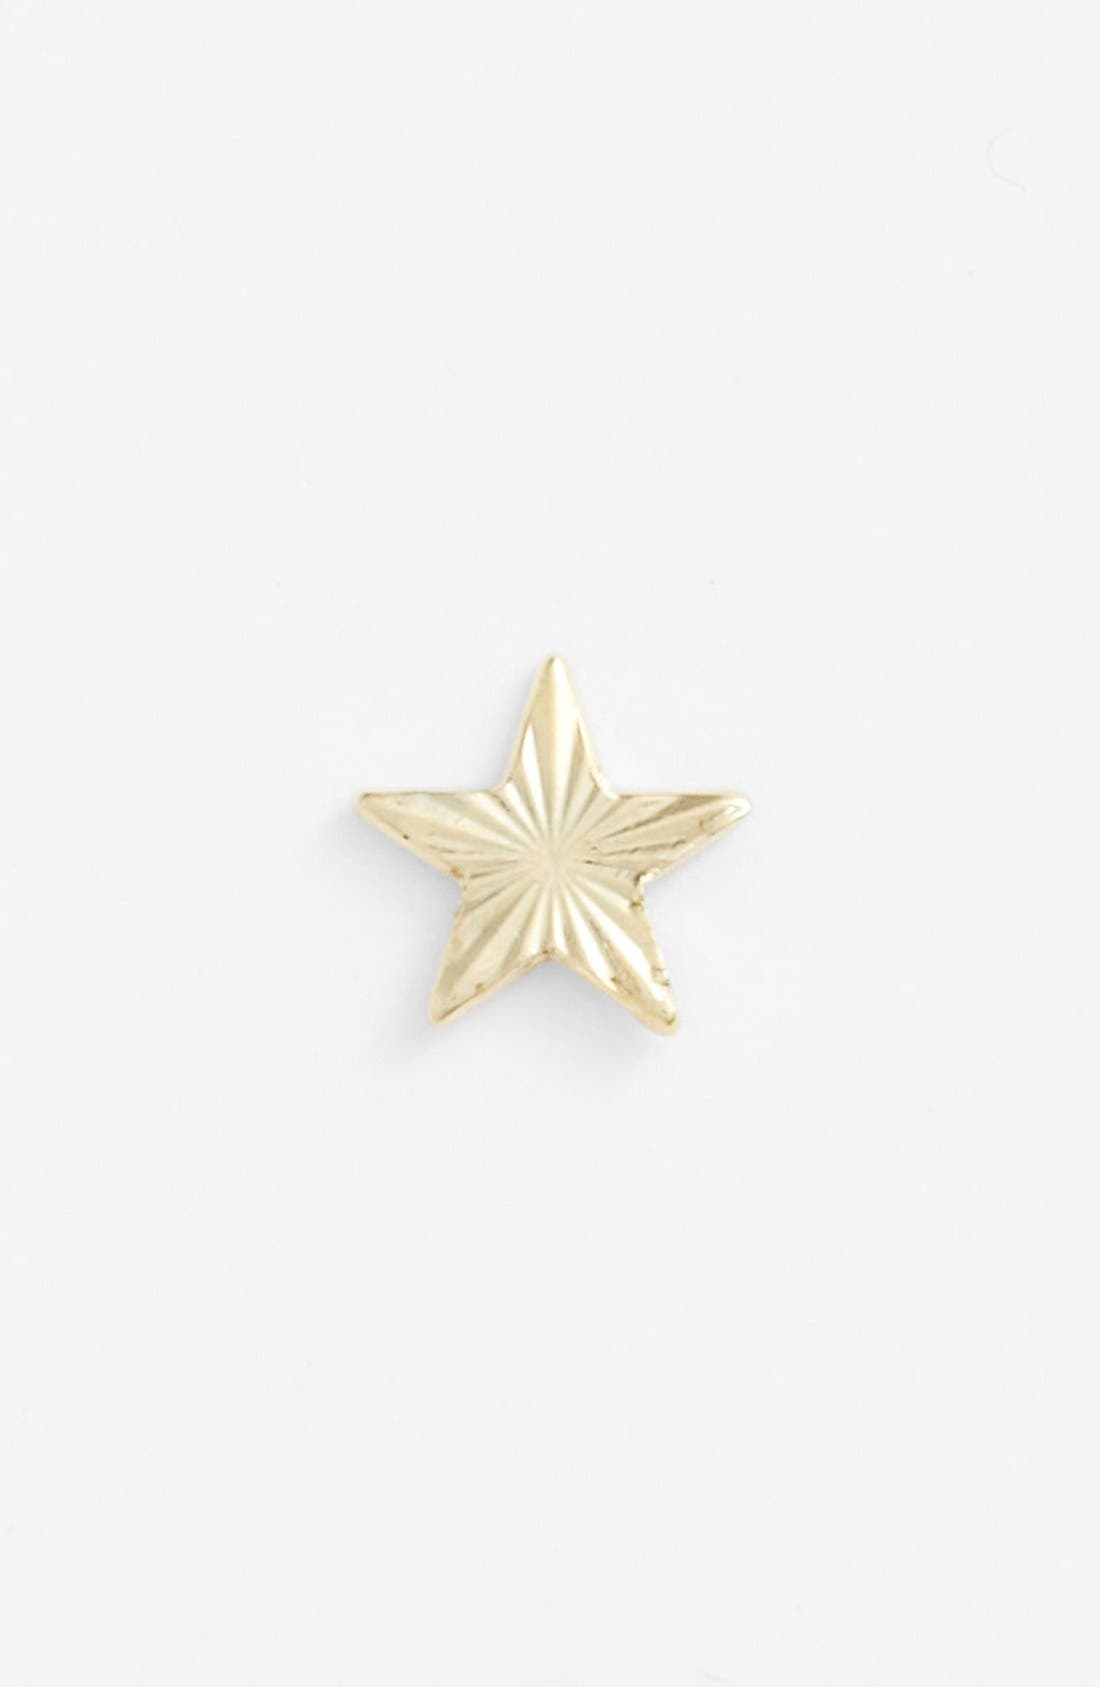 Alternate Image 1 Selected - Bonnie Jonas 'Star' Stud Earring